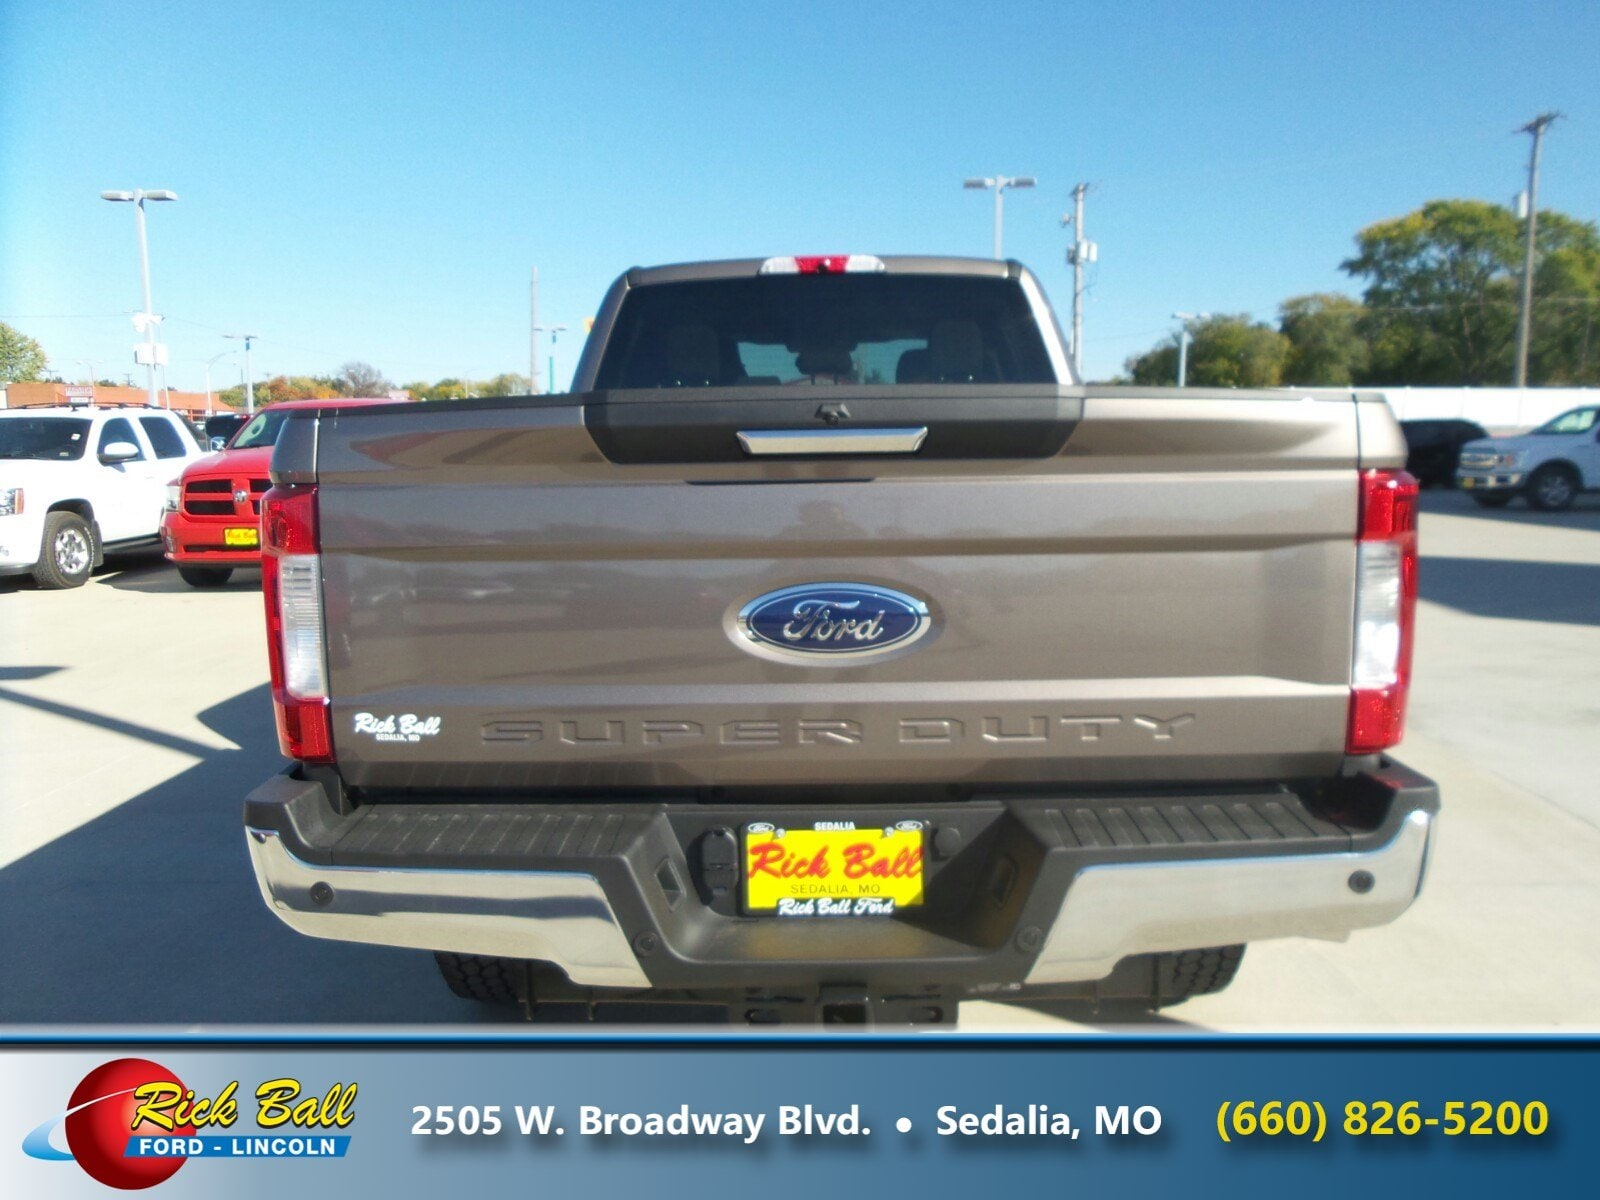 Rick Ball Ford >> New 2019 Ford Superduty For Sale At Rick Ball Ford Lincoln